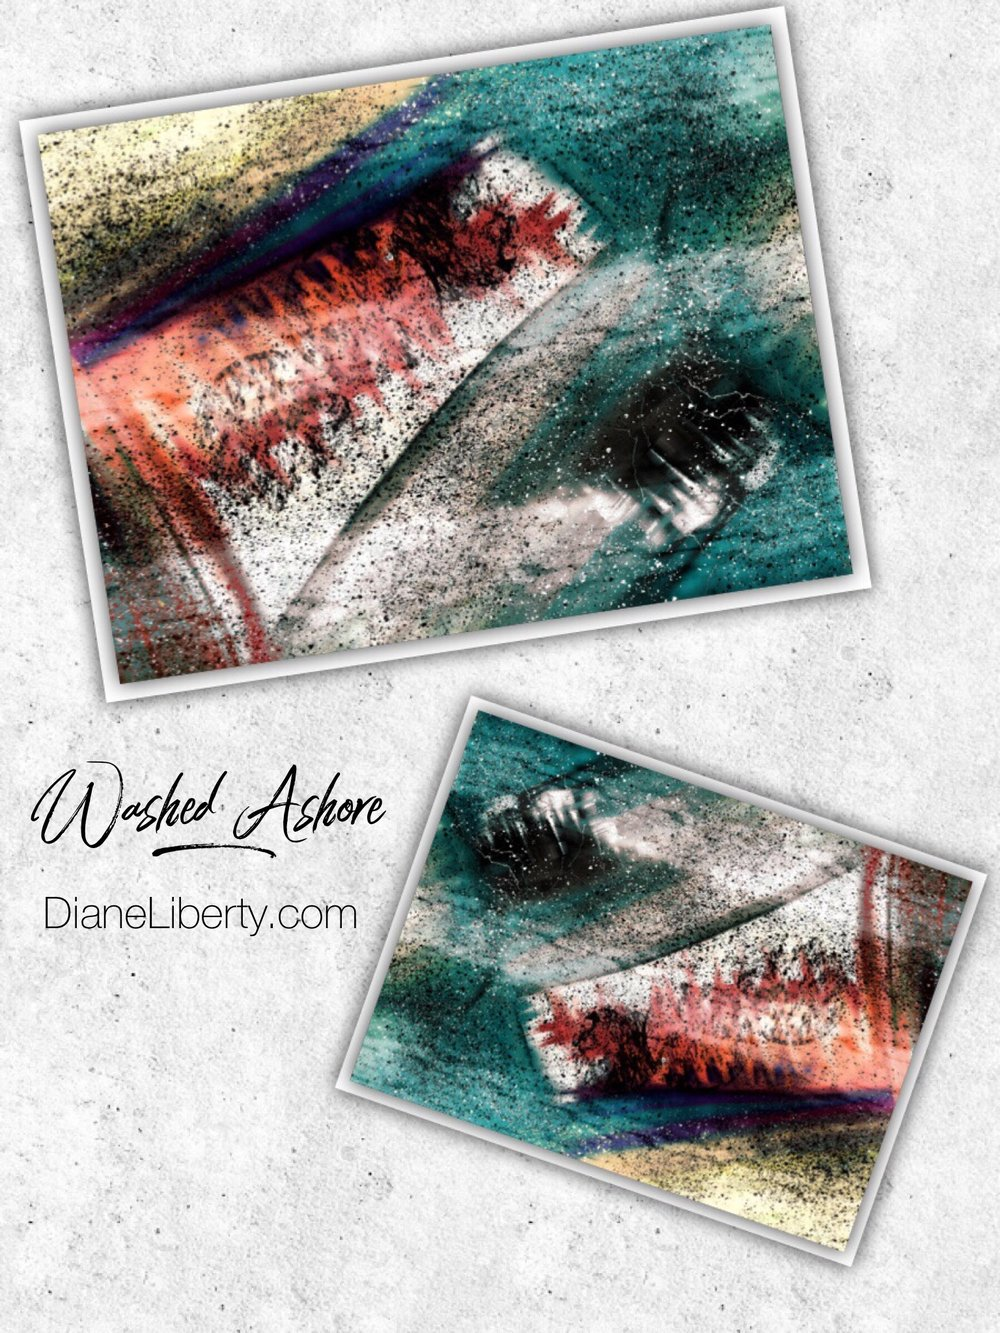 """Washed Ashore"" by Diane Liberty"